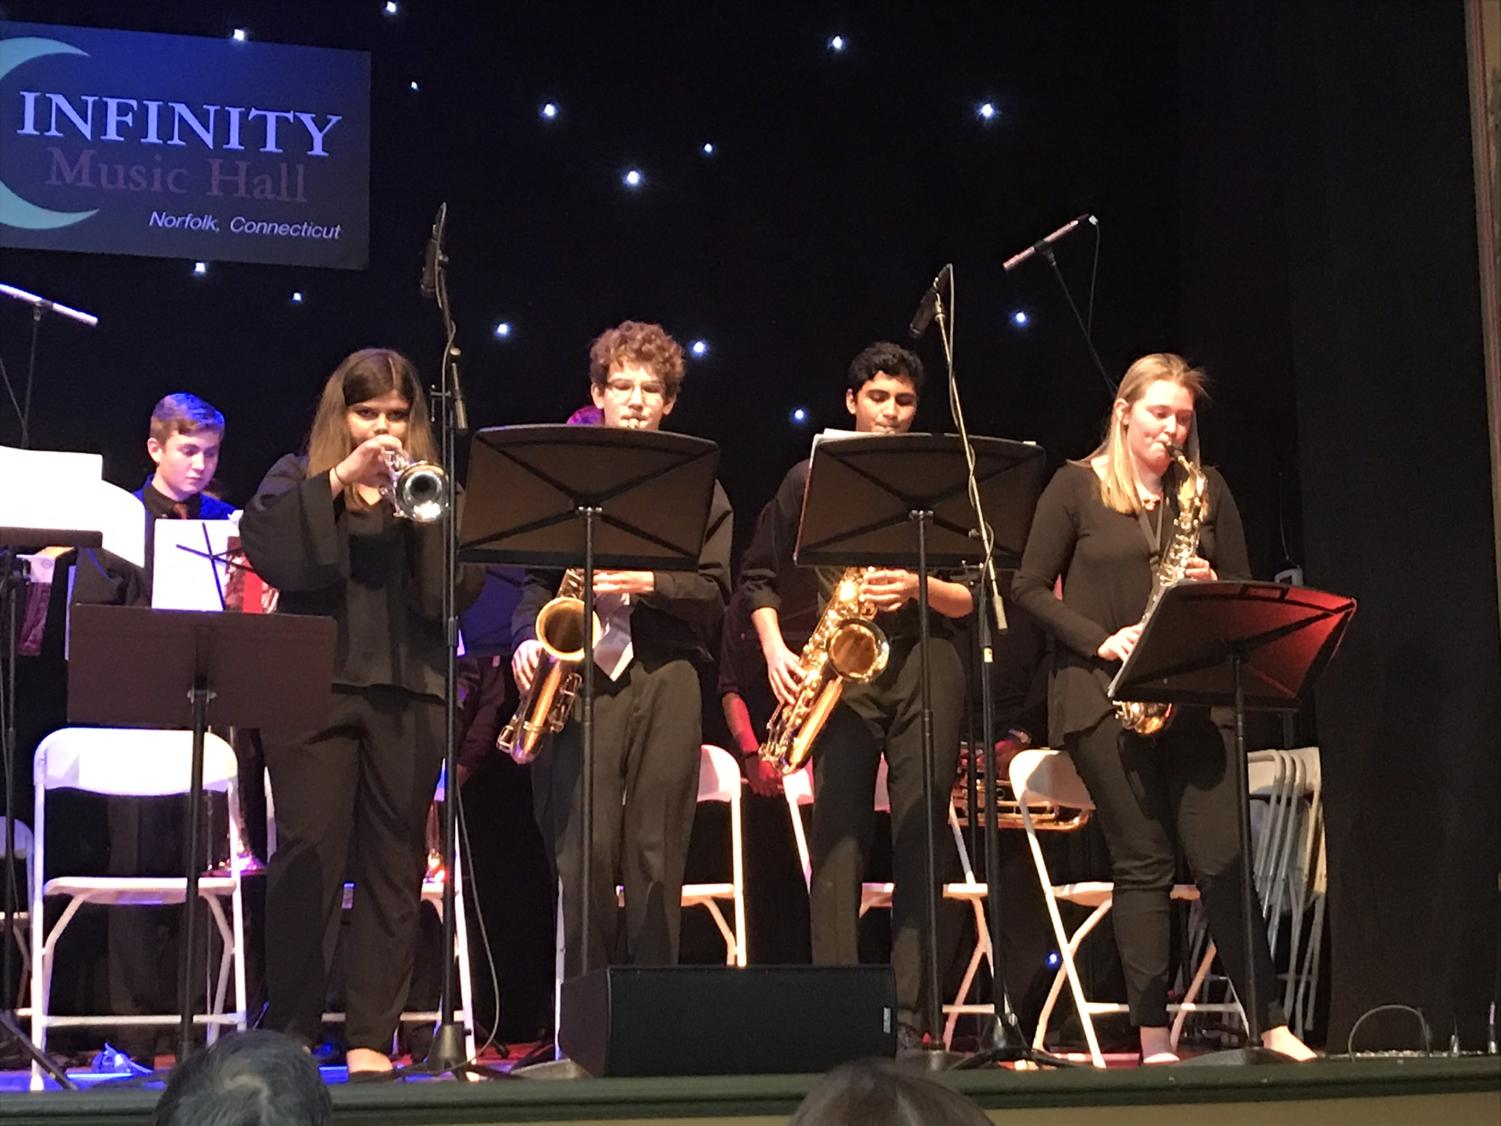 High notes-- Freshman Isabella Suffredini, sophomore Owen Tragash, junior Rohit Limaye, and junior Anna Saraceno play at the Southern New England High School Jazz Festival. The event, which took place at Infinity Hall in Norwalk, raised 350 dollars for the band.